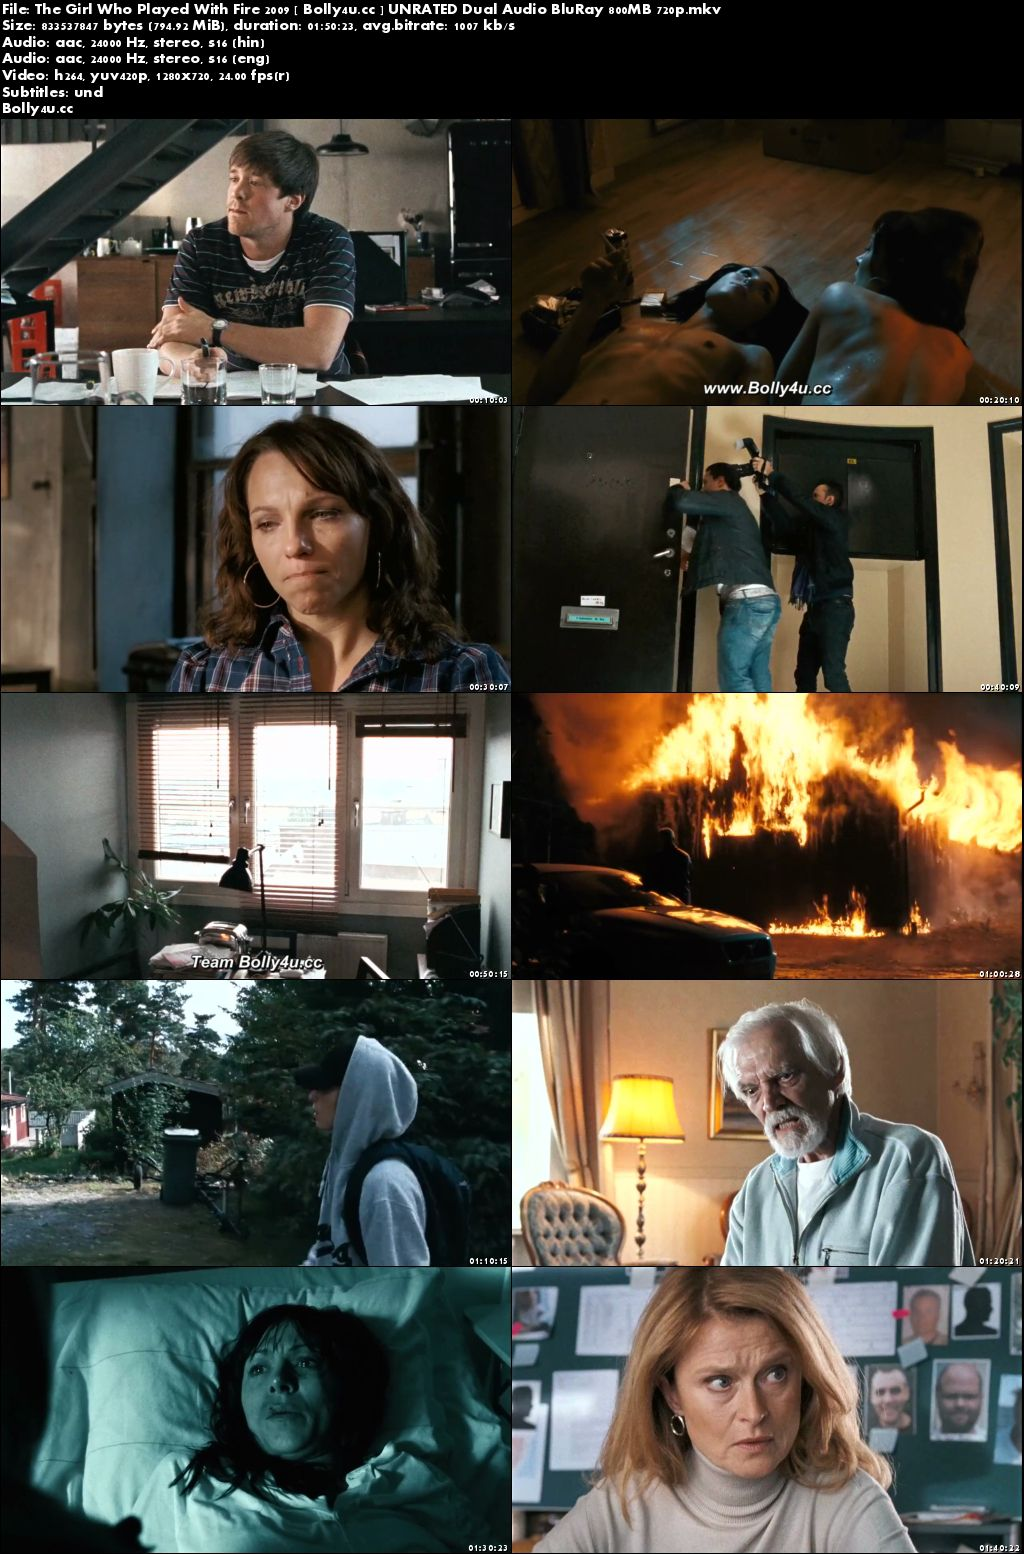 The Girl Who Played With Fire 2009 UNRATED BluRay 800MB Hindi Dual Audio 720p Download